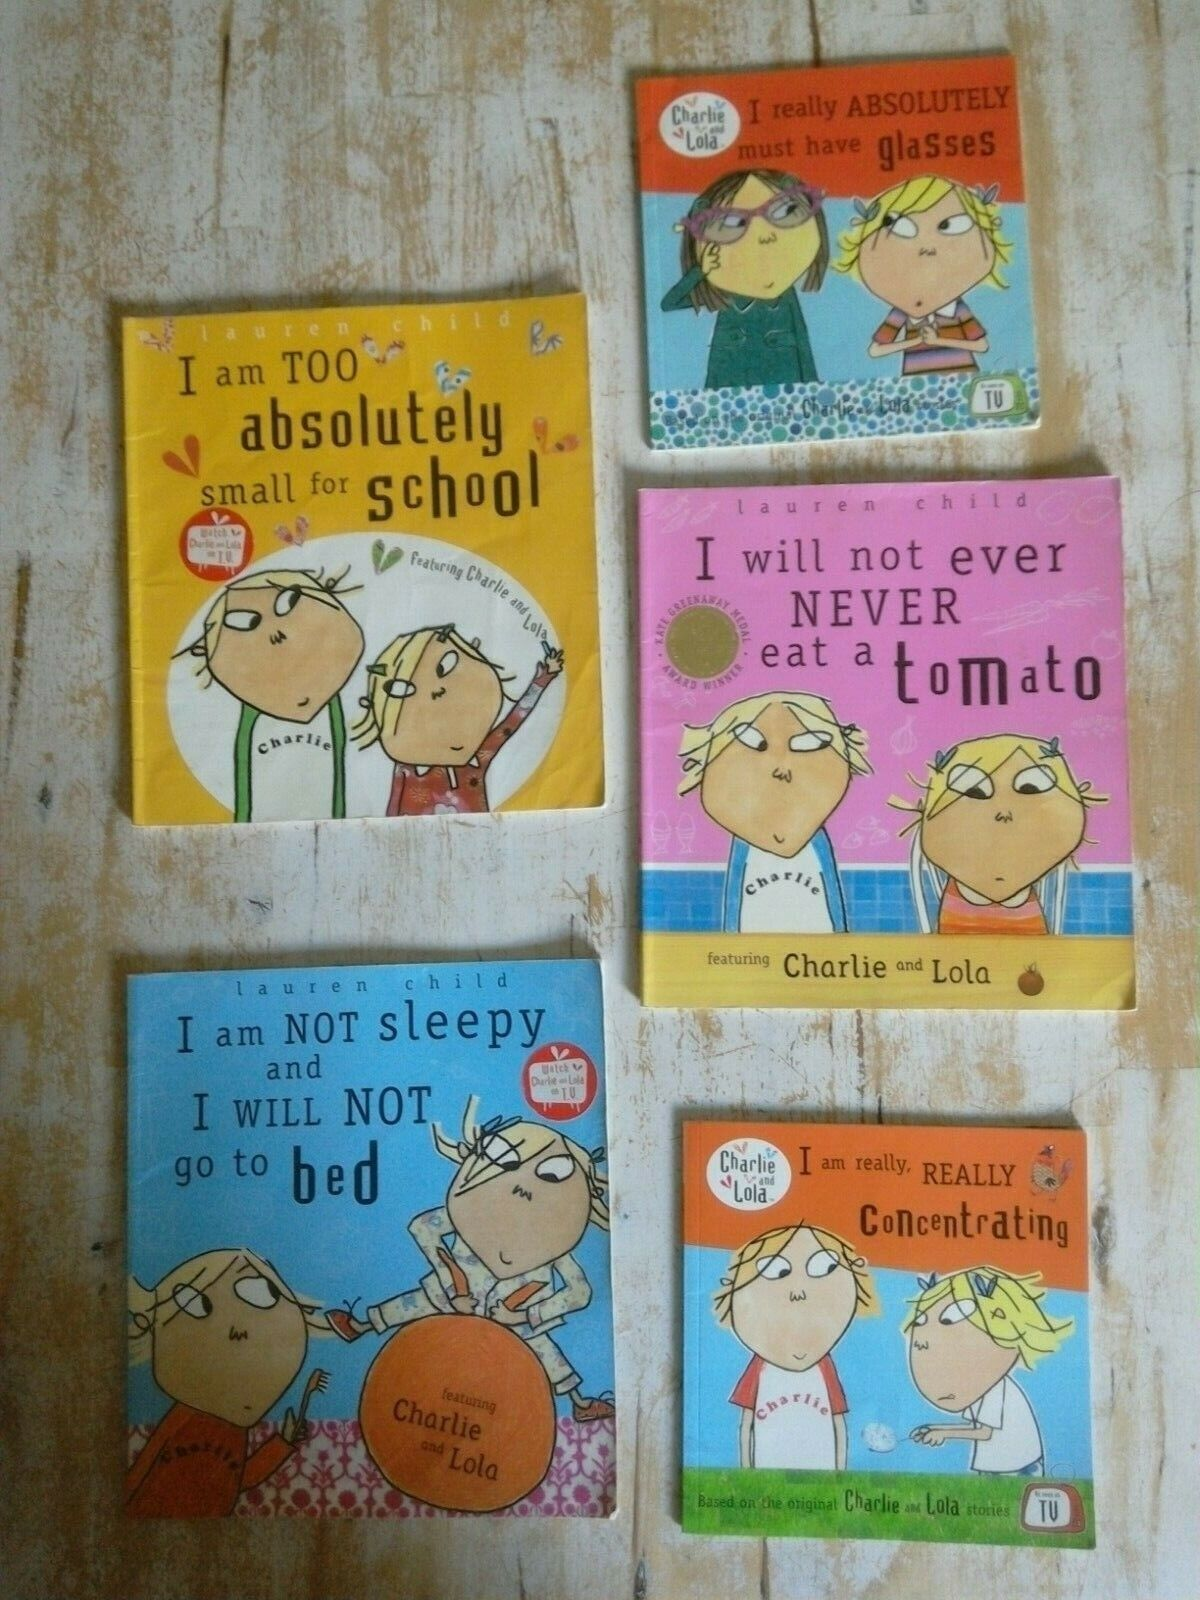 5 Charlie and Lola Books by Lauren Child -Paperback Children's Books in English